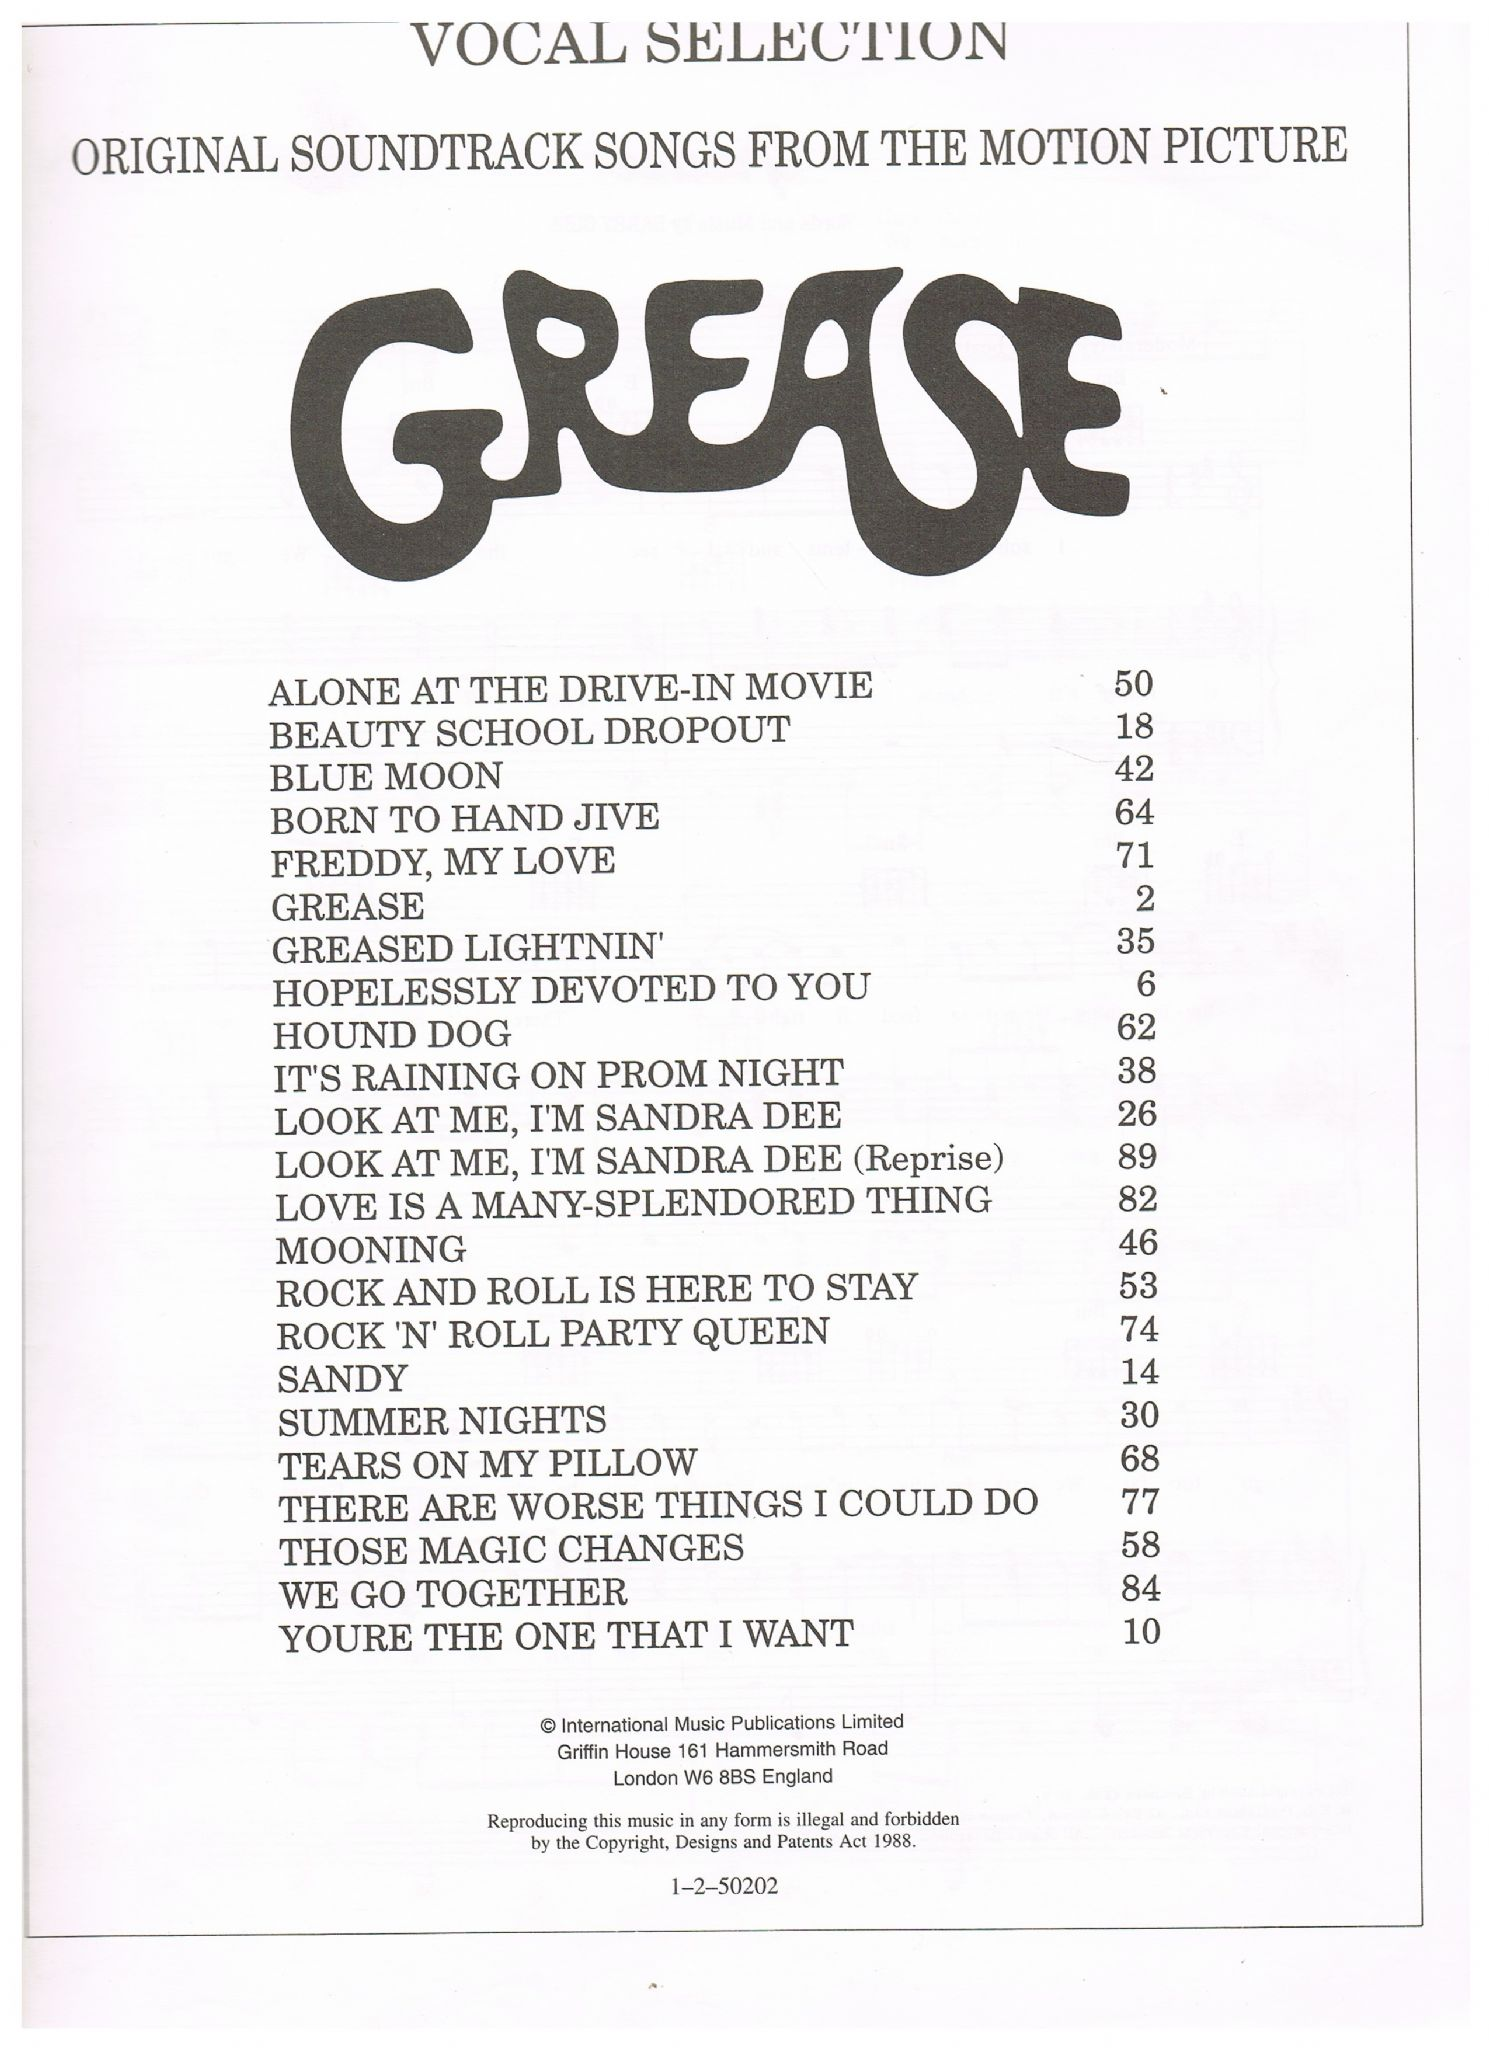 GREASE Original Soundtrack Songs from the Motion Picture Jacobs  Jim &  Casey  Warren et al